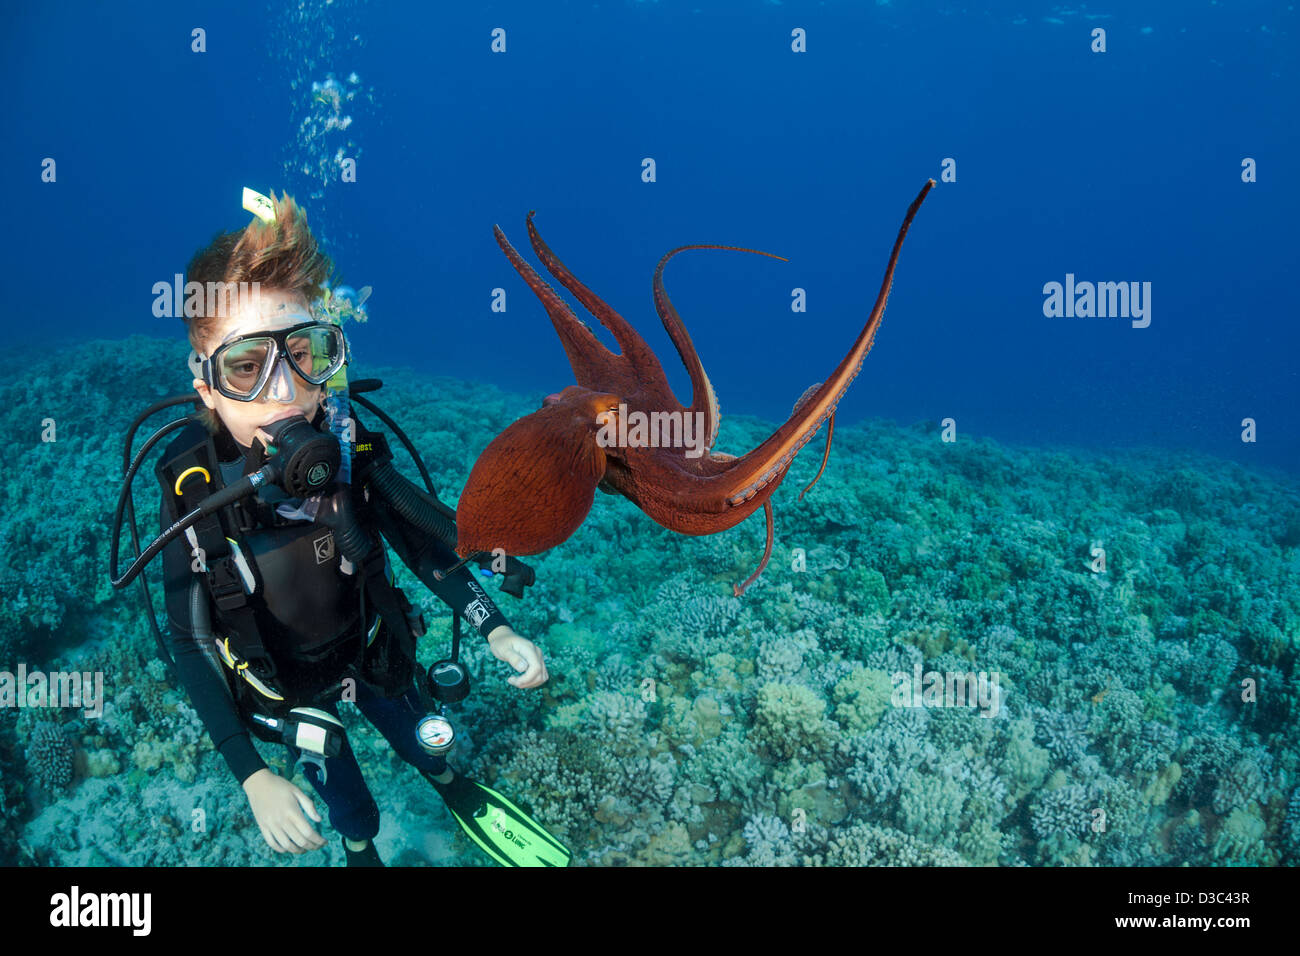 Diver, Sean Fleetham (MR), gets his first look at a day octopus, Octopus cyanea, Maui, Hawaii. - Stock Image